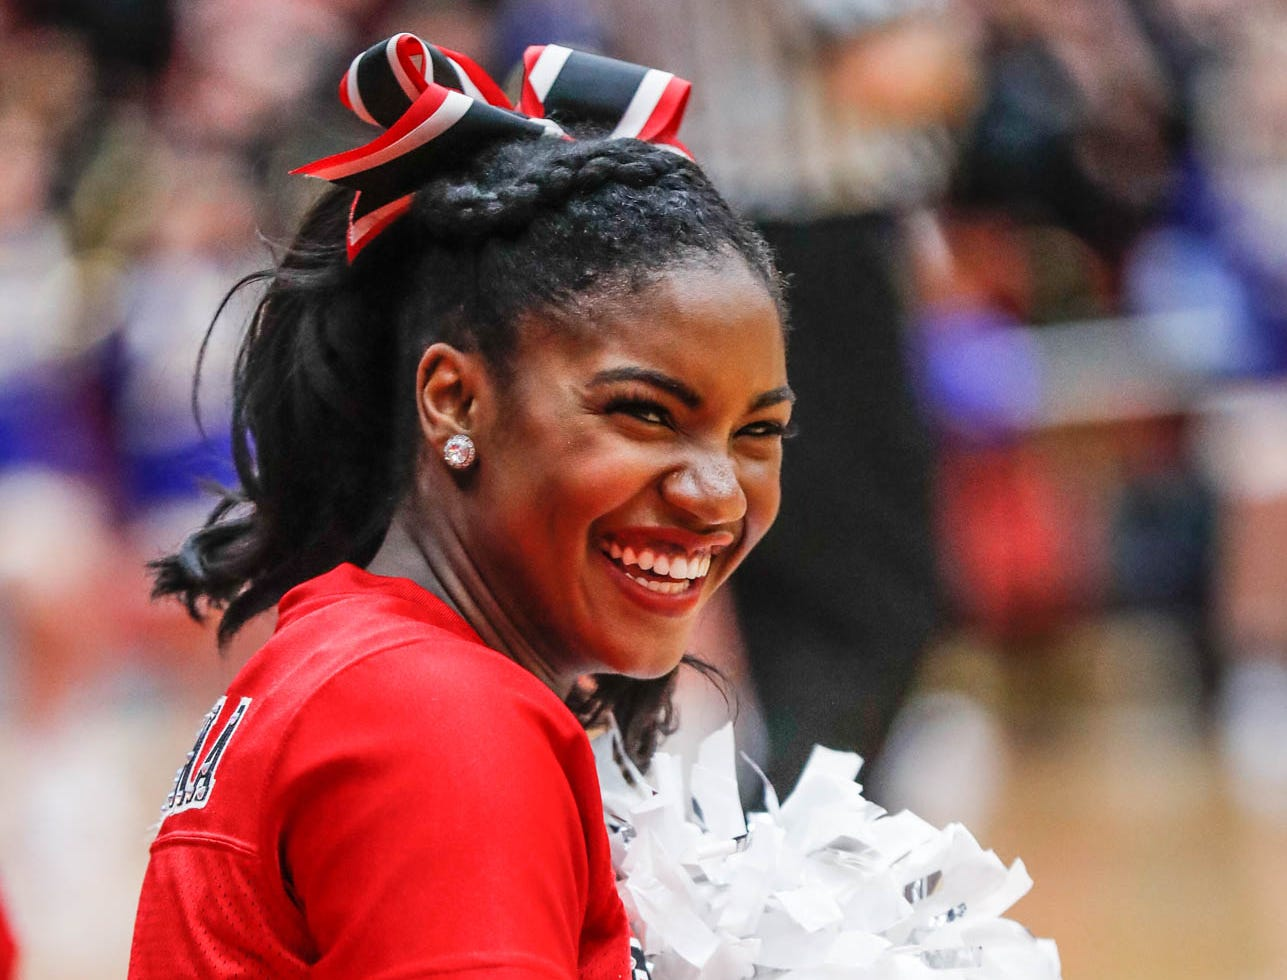 A Center Grove Dance Team member smiles at a team mate during a game between Center Grove High School and Carmel High School, held at Center Grove on on Friday, Jan. 4, 2019.